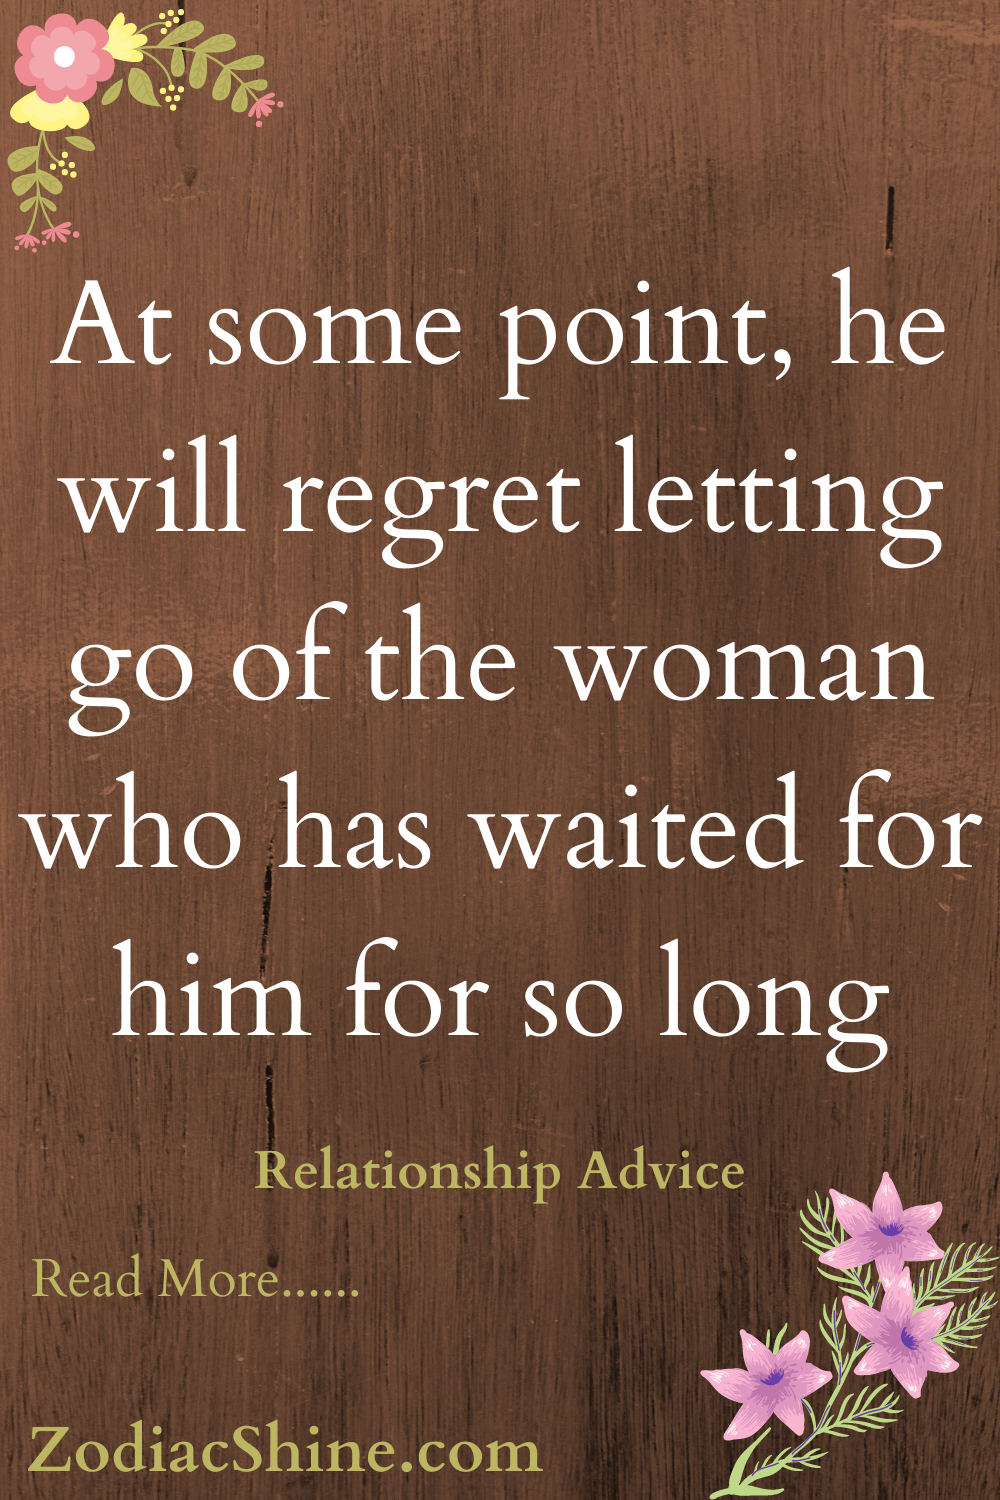 At some point he will regret letting go of the woman who has waited for him for so long